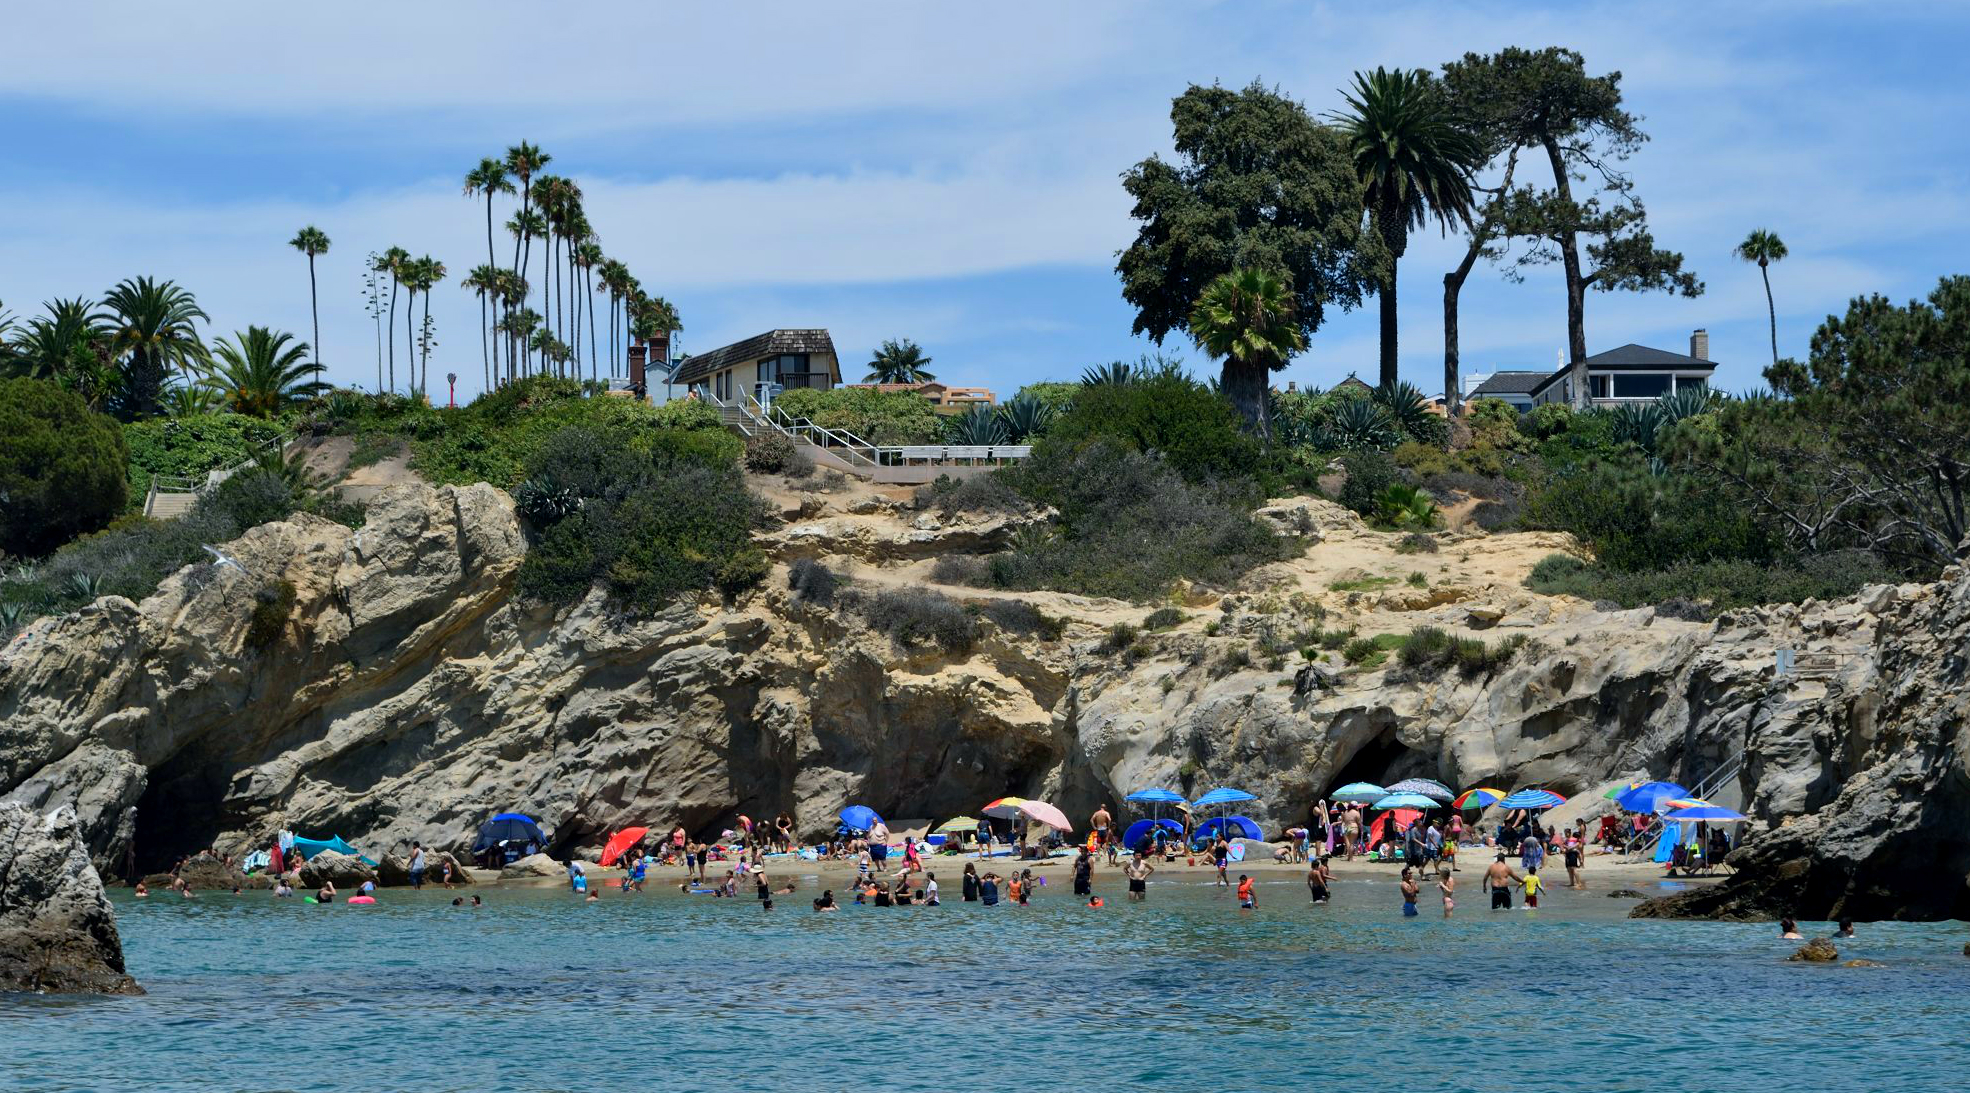 Pirates Cove, one of the many remarkable sites along a tour of Newport Harbor, has been the backdrop for several famous television and movie moments. Among them, it is the spot where the fictional S.S. Minnow ran aground in the pilot for Gilligan's Island.